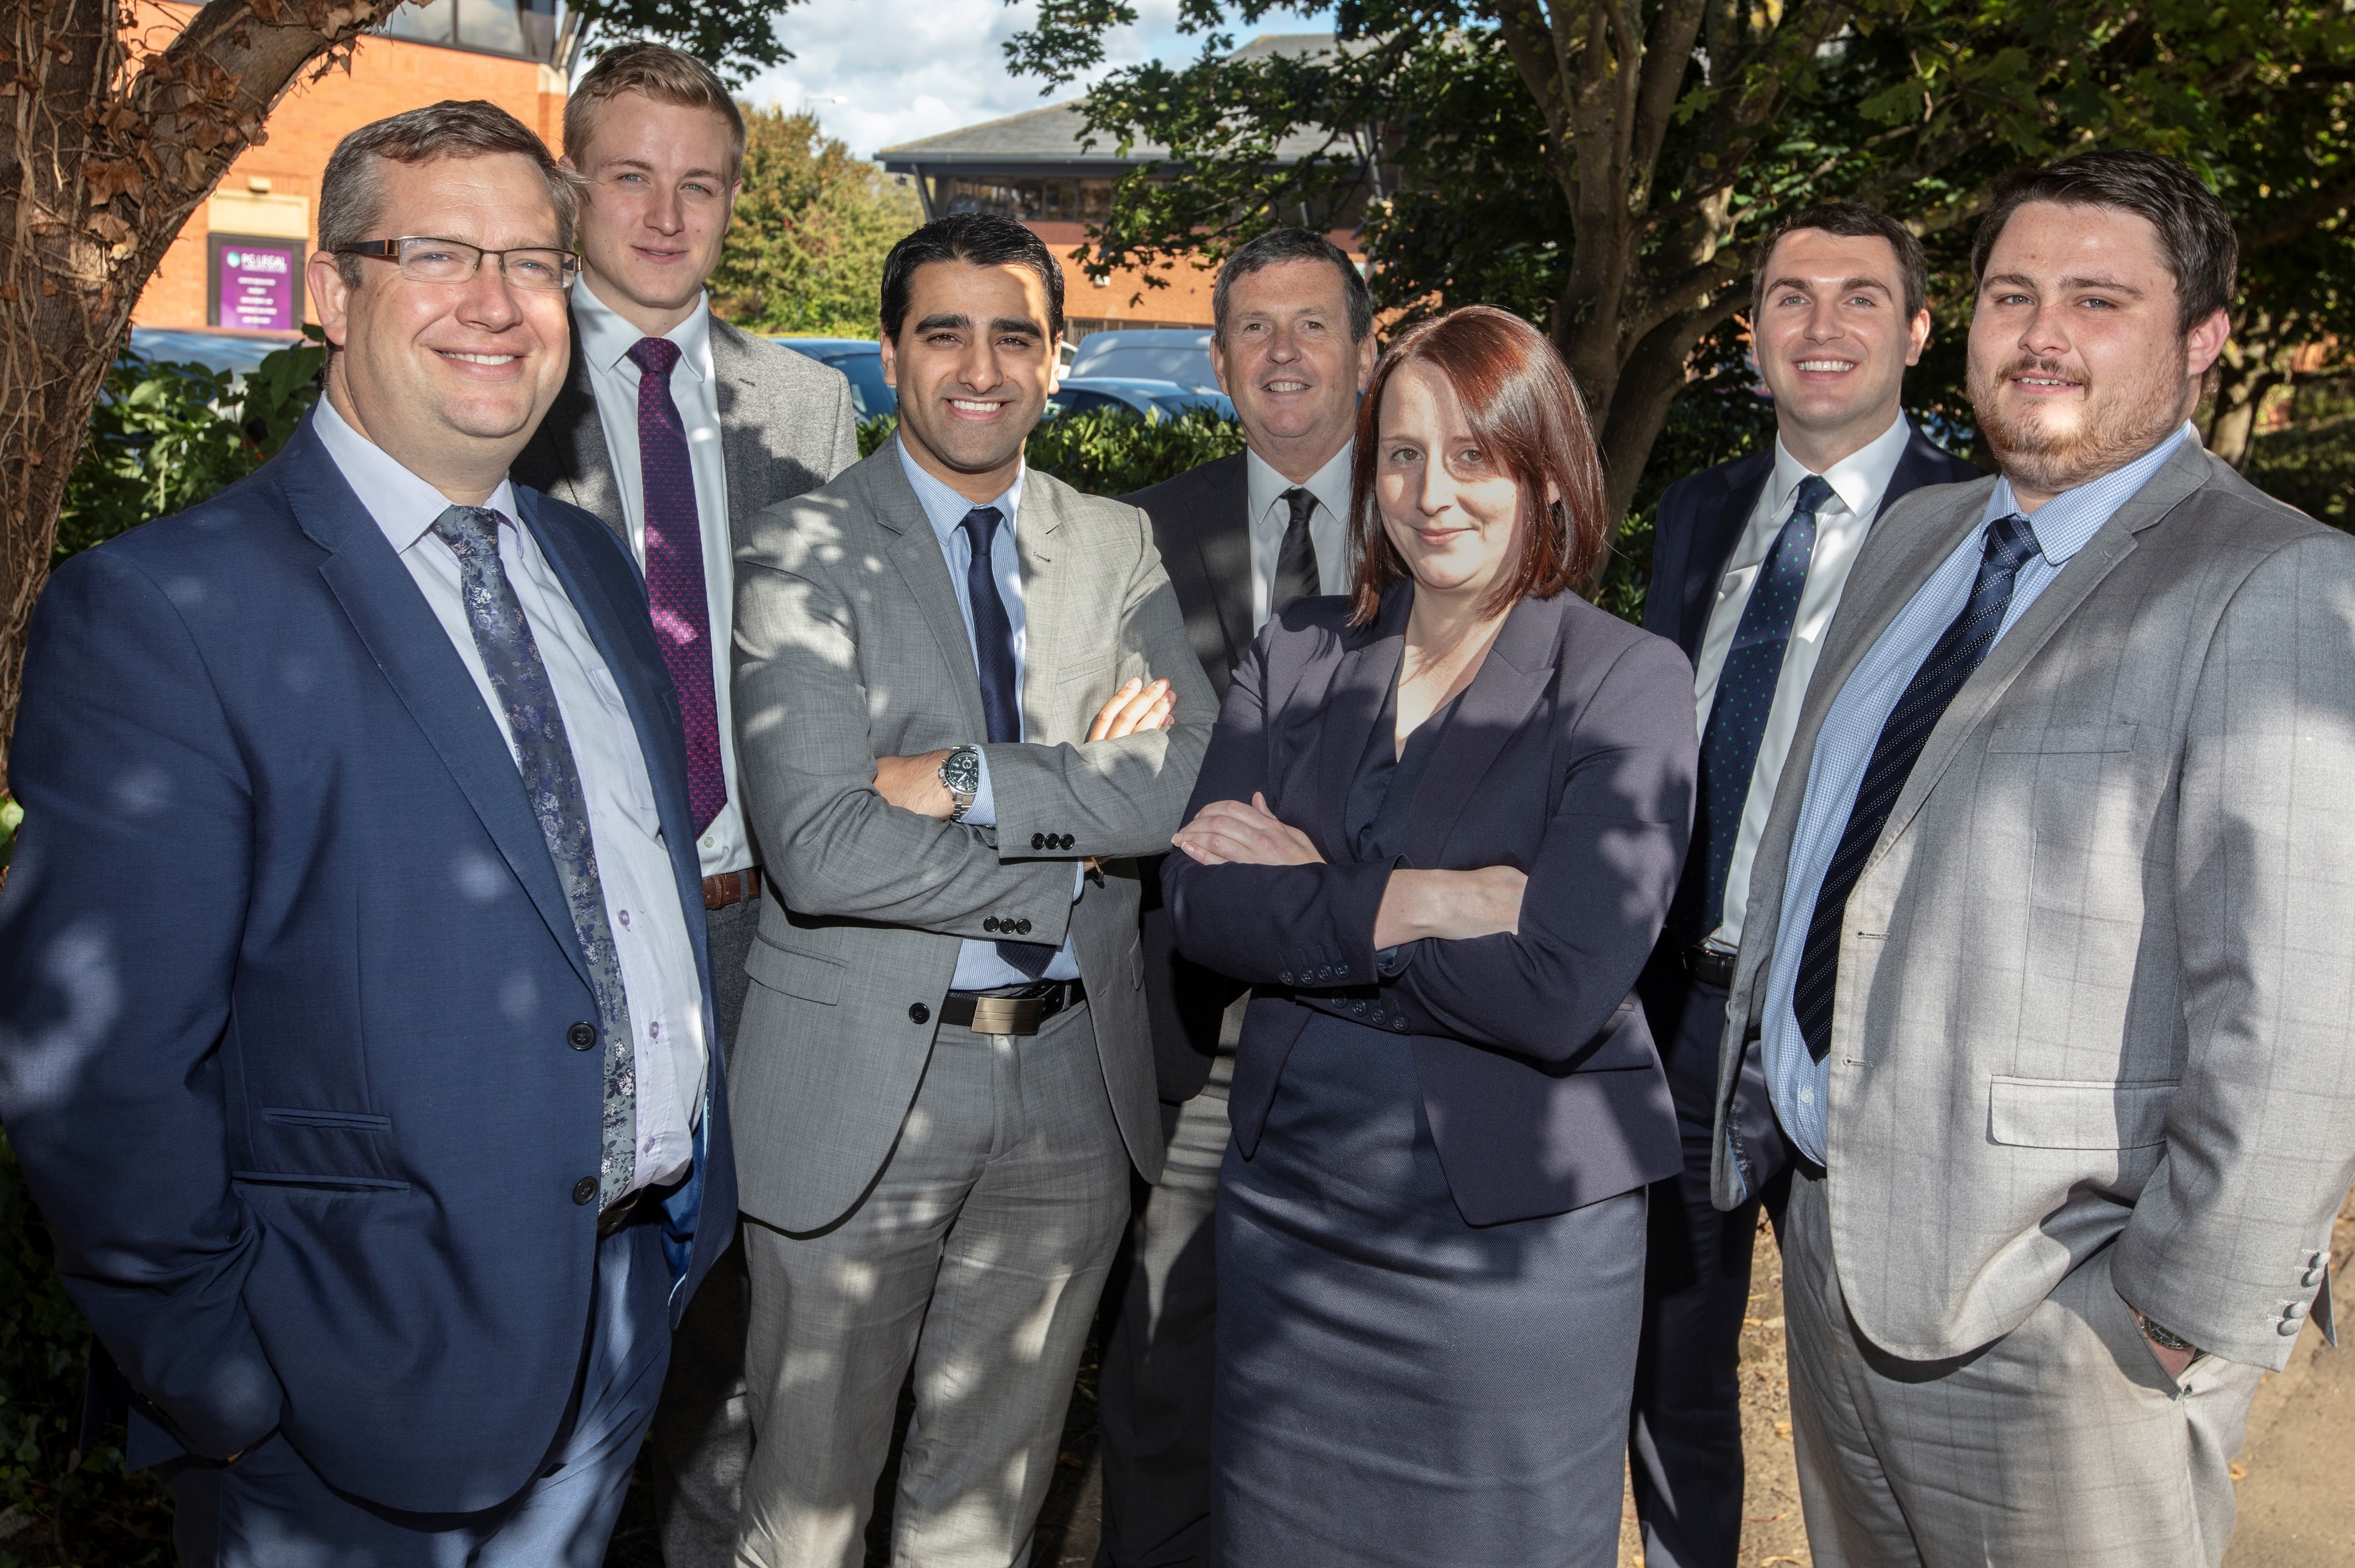 PG Legal shortlisted for North East Property Award 2019